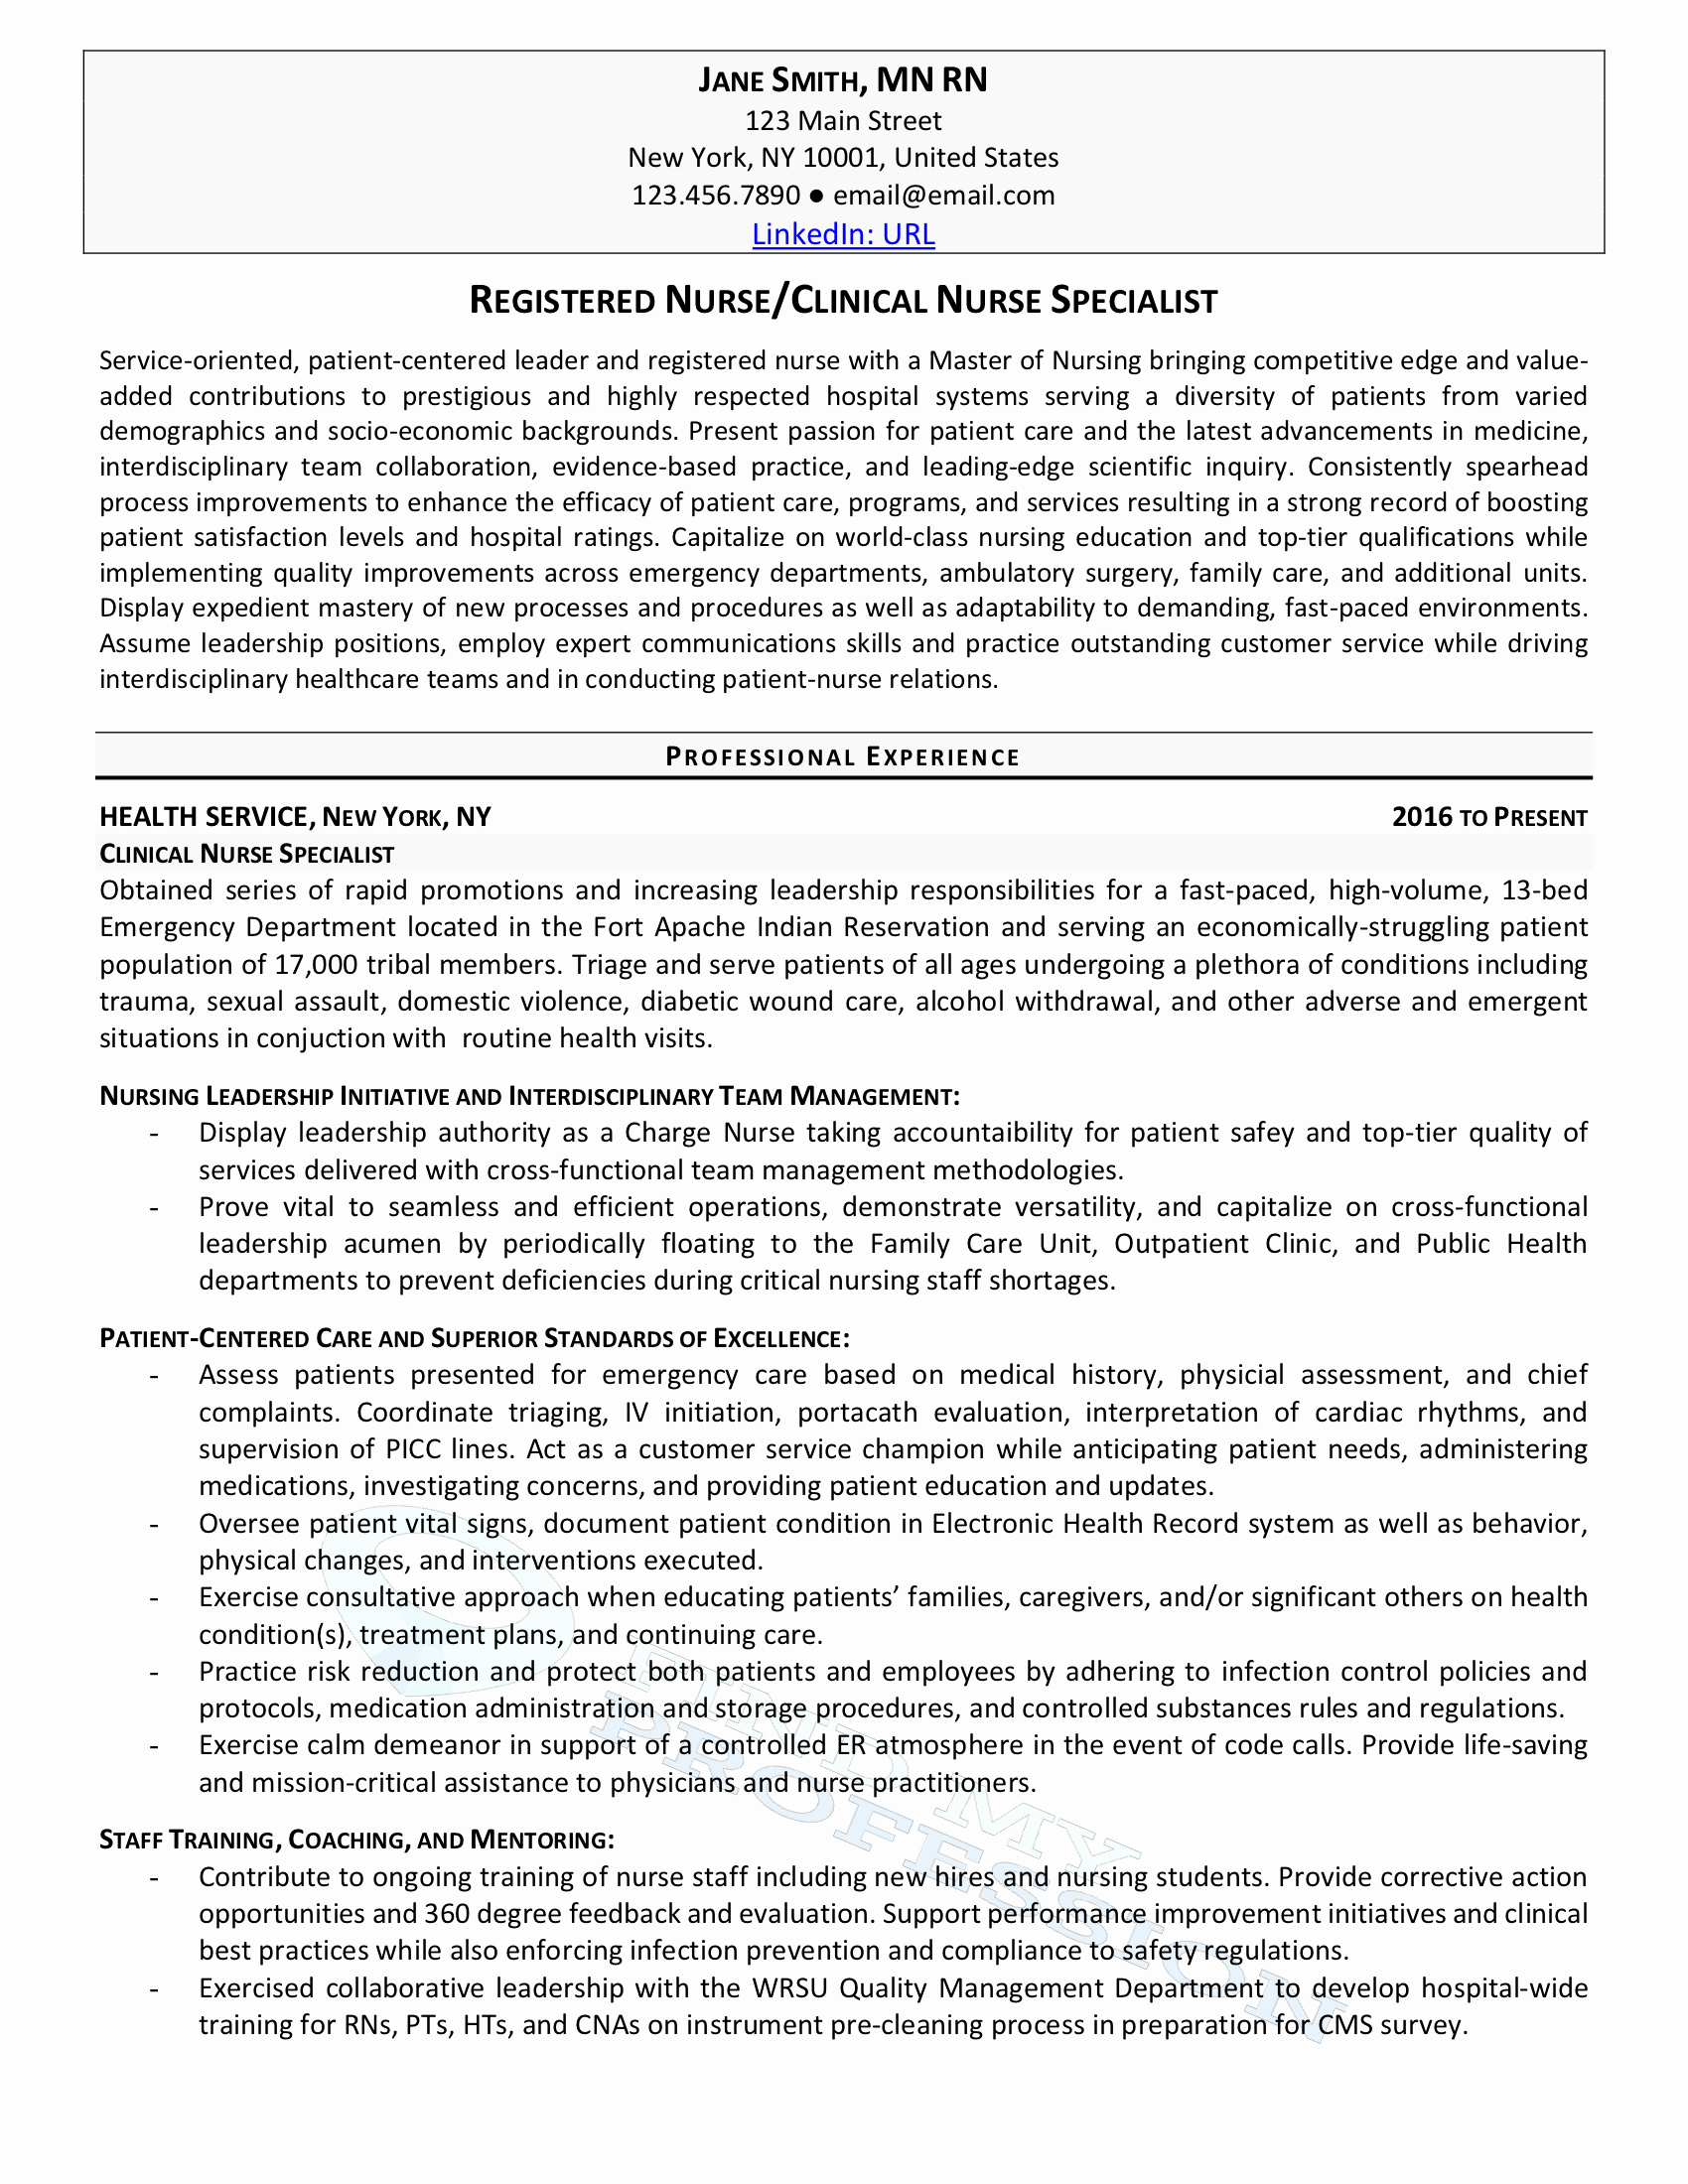 Sample Resume for Federal Jobs Elegant 10 Best Federal Government Resume Writing Services